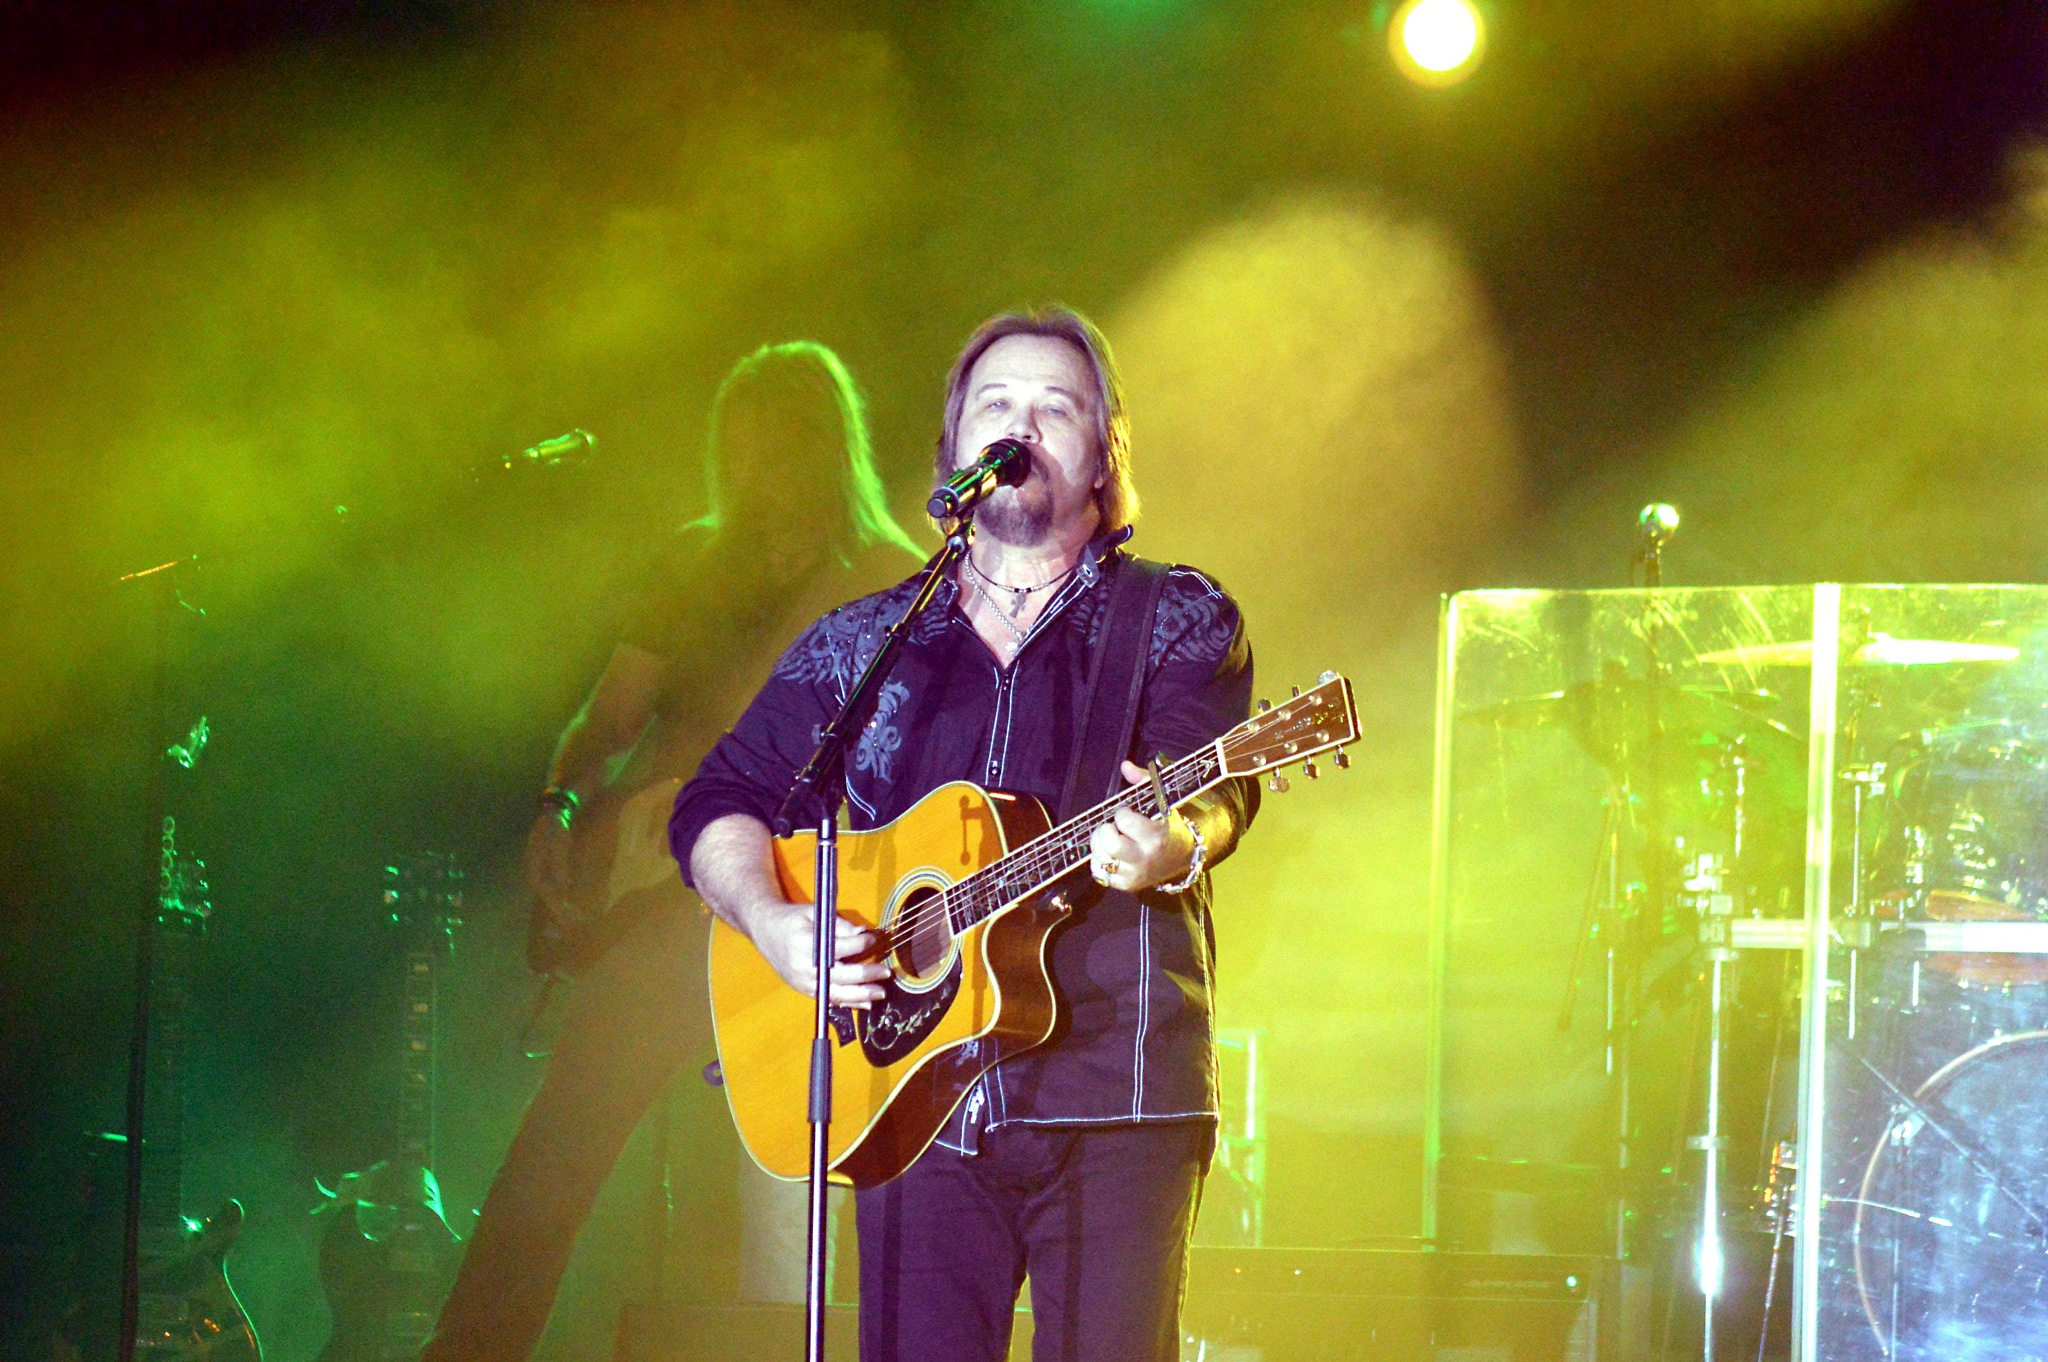 Travis Tritt Concert 4 by Dave Sesher